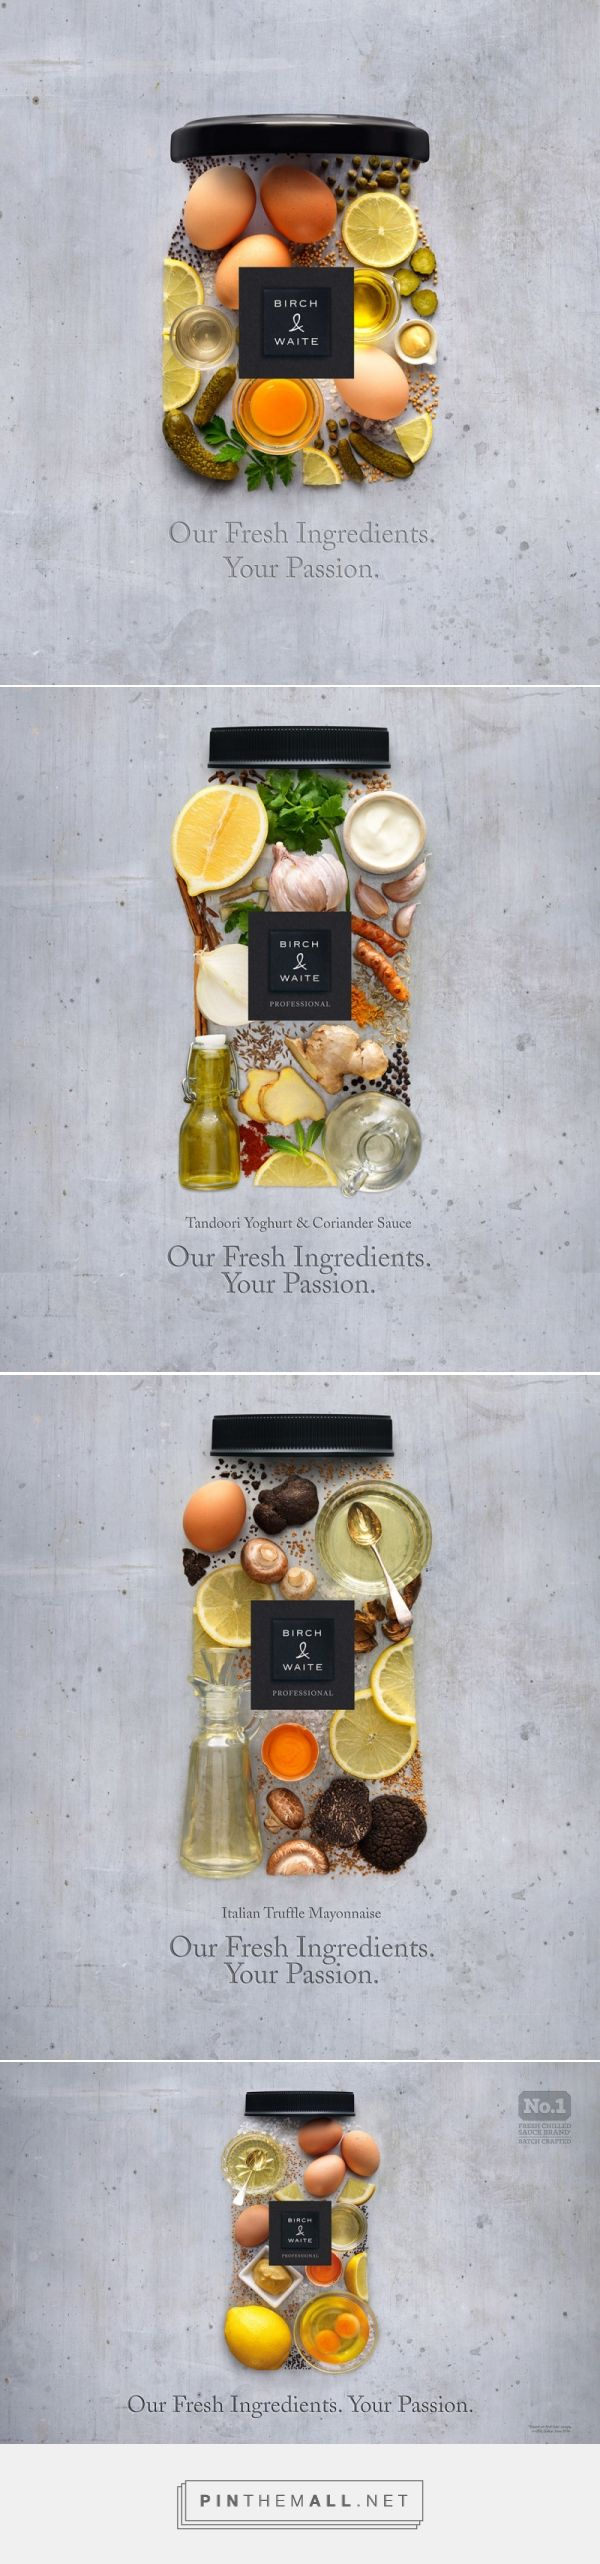 One of the most creative packaging designs and advertising campaigns I've seen lately.